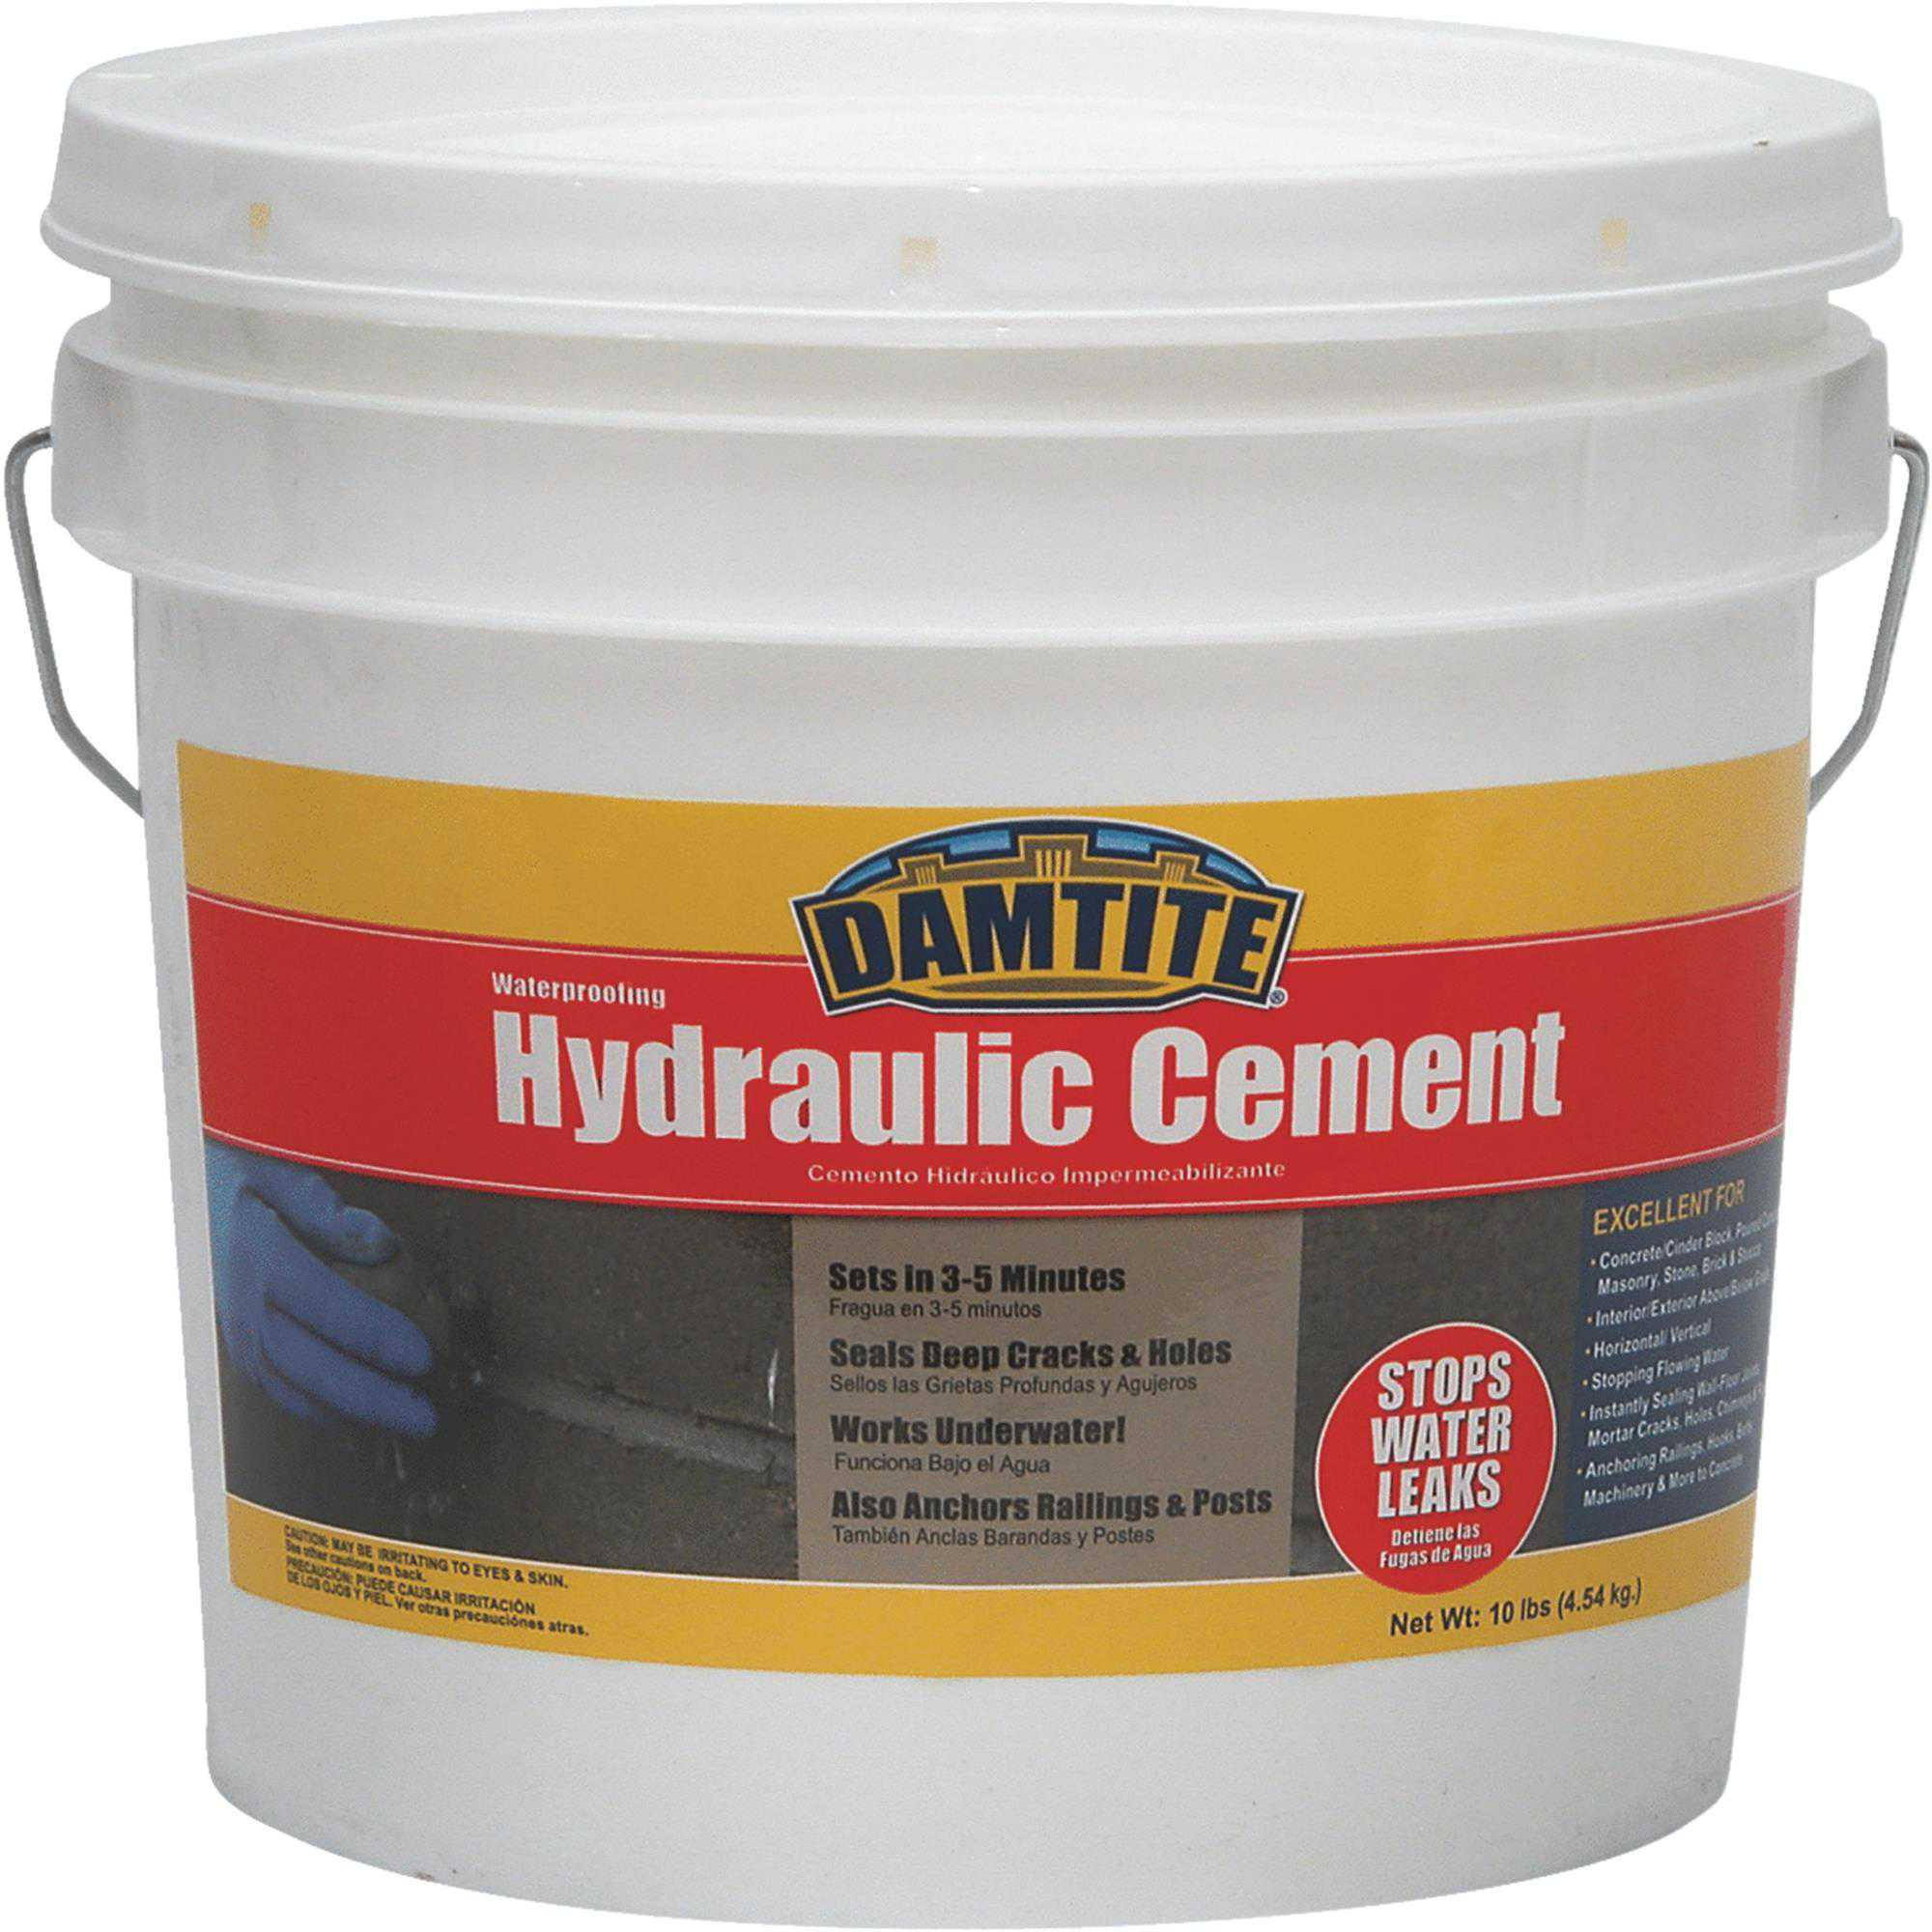 Damtite Waterproofing Hydraulic Cement